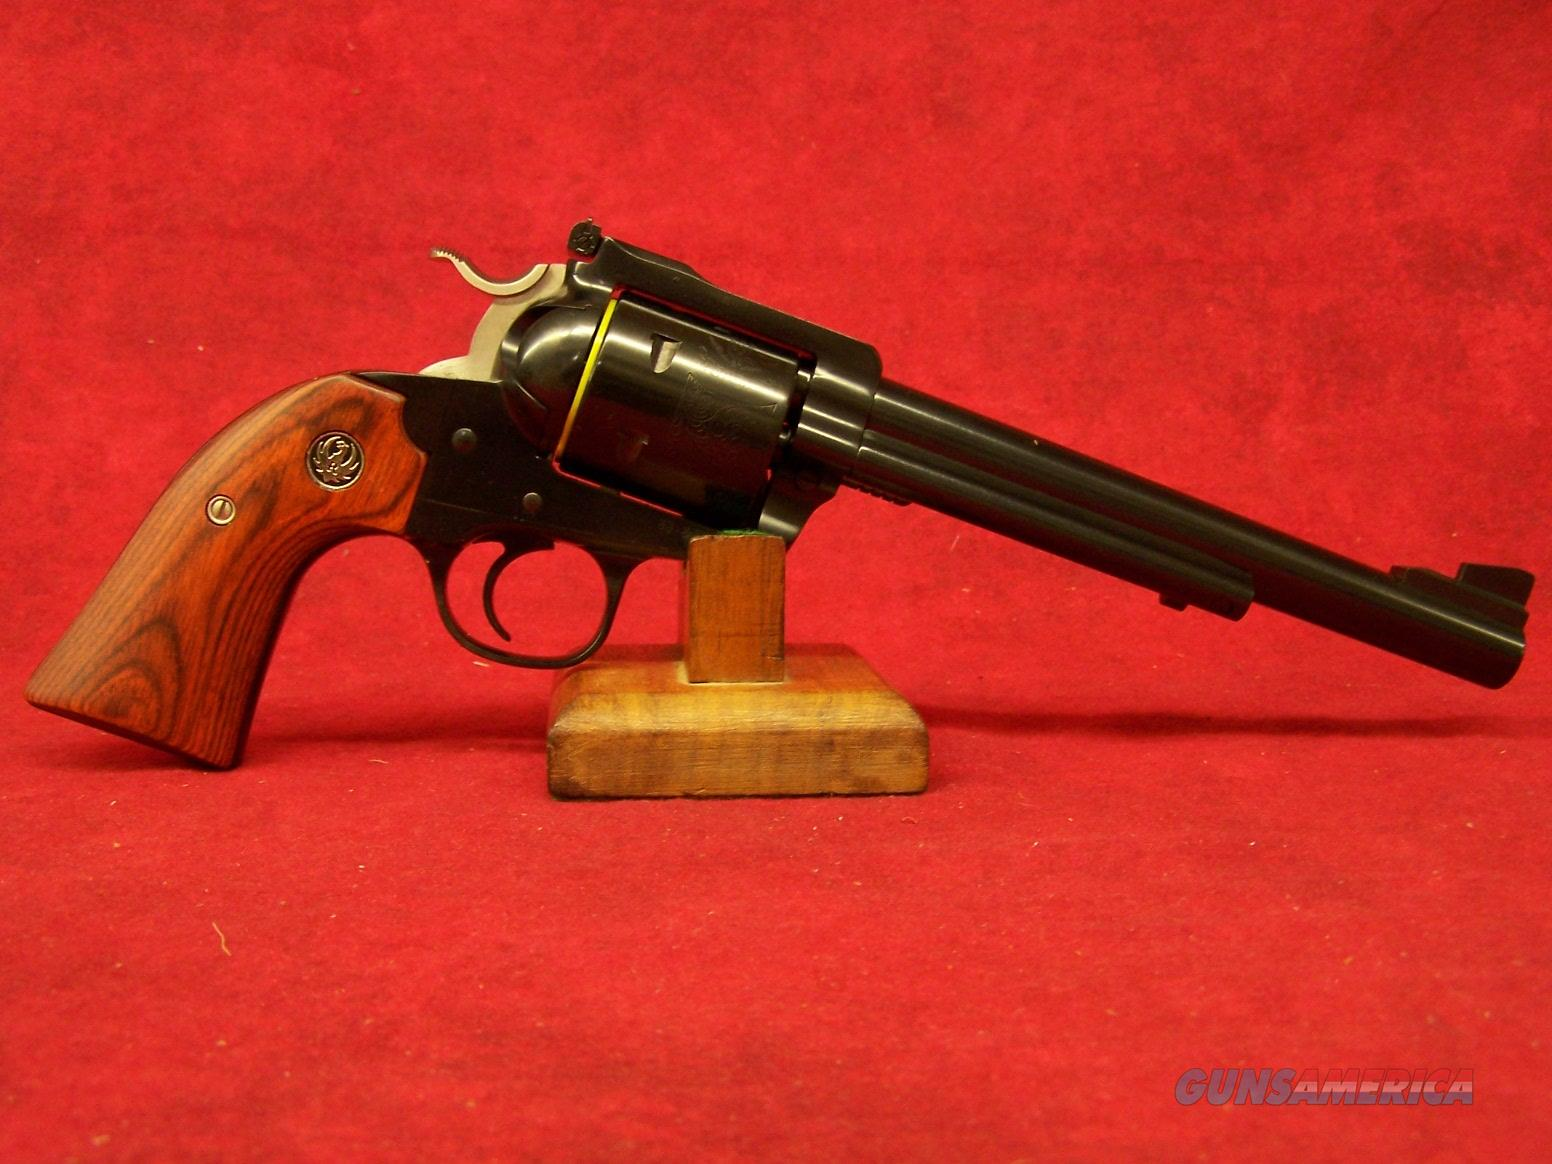 "Ruger Blackhawk Bisley New Model .44 Mag 7.5"" (00831)   Guns > Pistols > Ruger Single Action Revolvers > Blackhawk Type"